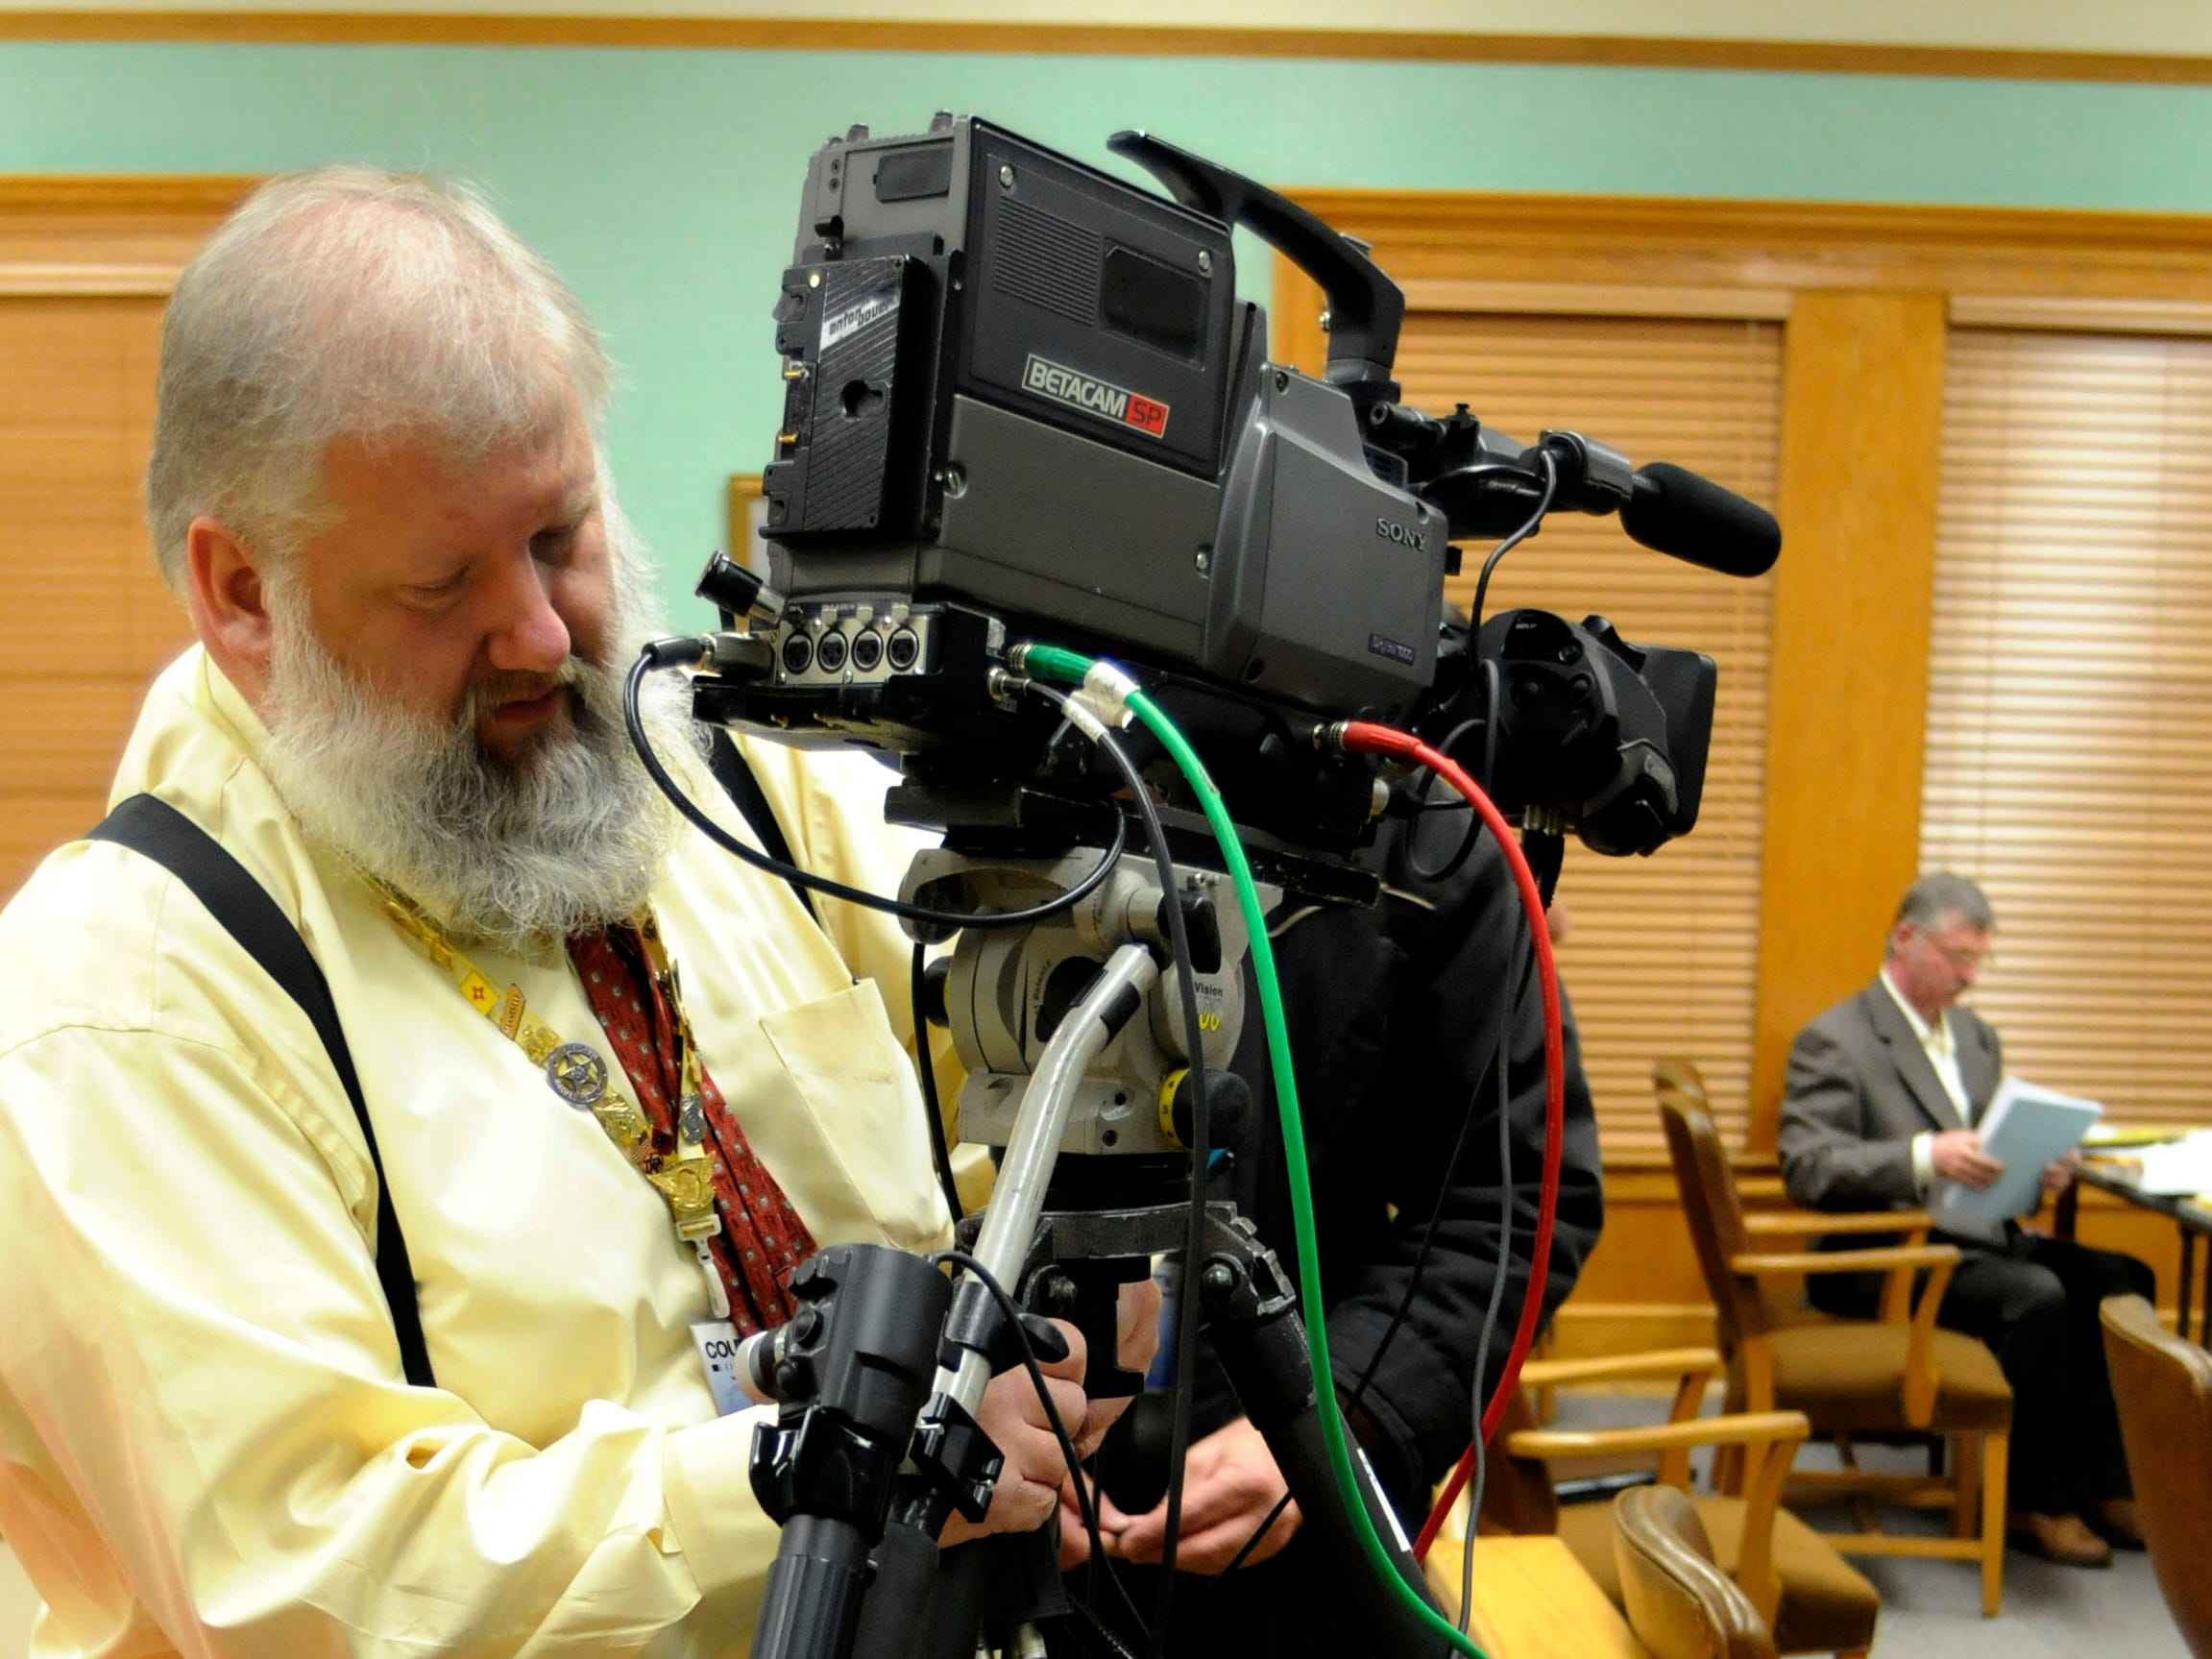 "Richard Friley, with Court TV, sets up a remote camera for viewing of the jury selection by the public. In the background top right is Rocky Houston who is on trial before Special Judge James R. ""Buddy"" Scott in Roane County Circuit Court. Houston is accused of ambushing Roane County Sheriff's Office Deputy William Birl Jones, 53, and ride-along Gerald Michael Brown, 44, in May 2006, killing them both. Houston, 45, contends he acted in self-defense and for years has been the target of a corrupt Roane County judicial system. He has filed dozens of lawsuits over a myriad of claims, ranging from allegations of insurance fraud to jury tampering.  Wednesday, December 3, 2008"